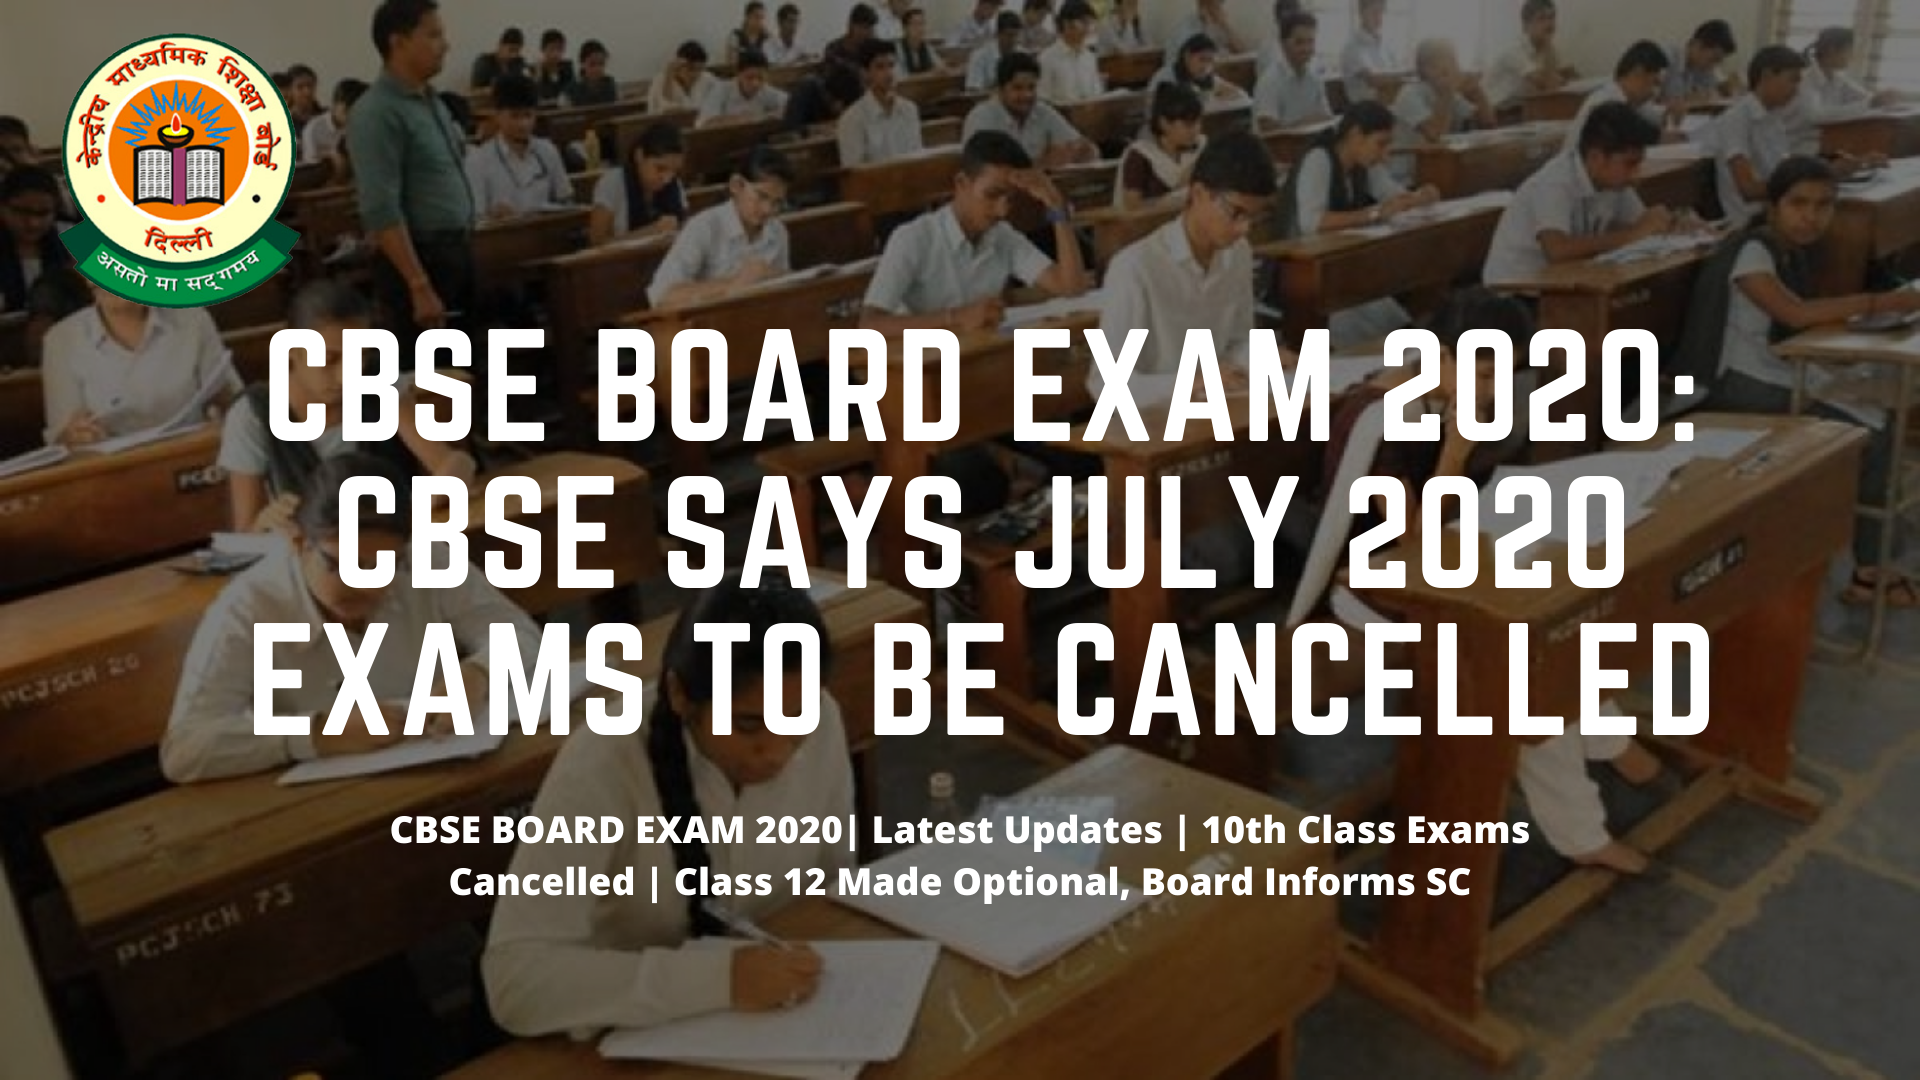 CBSE Board Exam 2020   CBSE Say July 2020 Exams To Be Cancelled   Latest Update